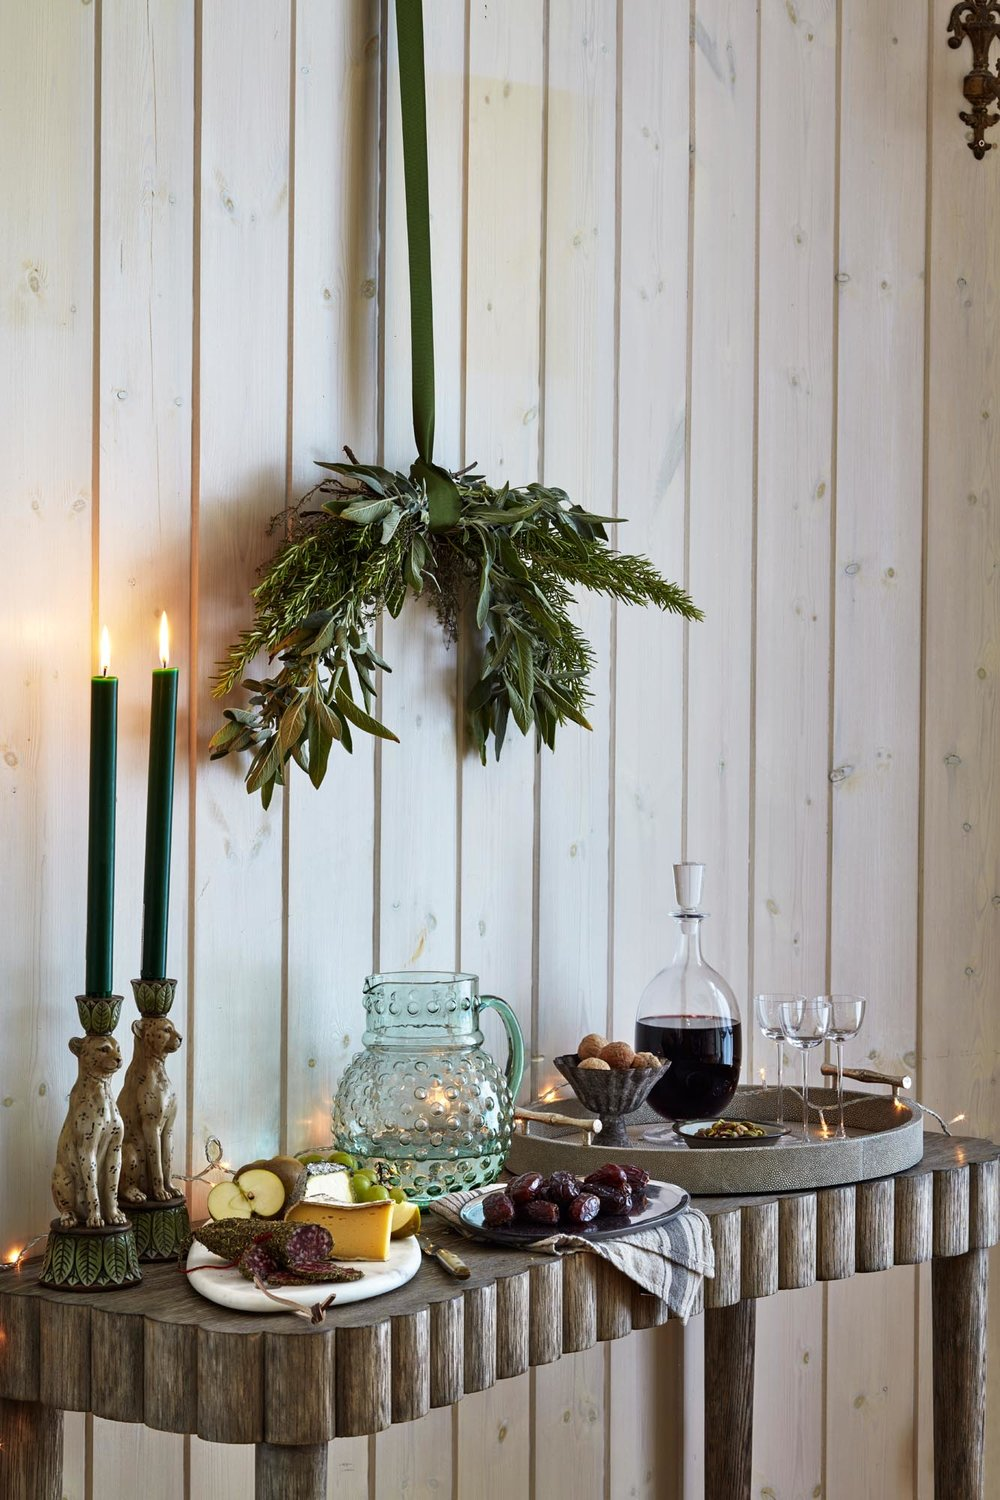 32.HomesAndGardensJan17SimonBrownMarinaFilippelliAliBrownFestiveEntertainingServingTable.jpg